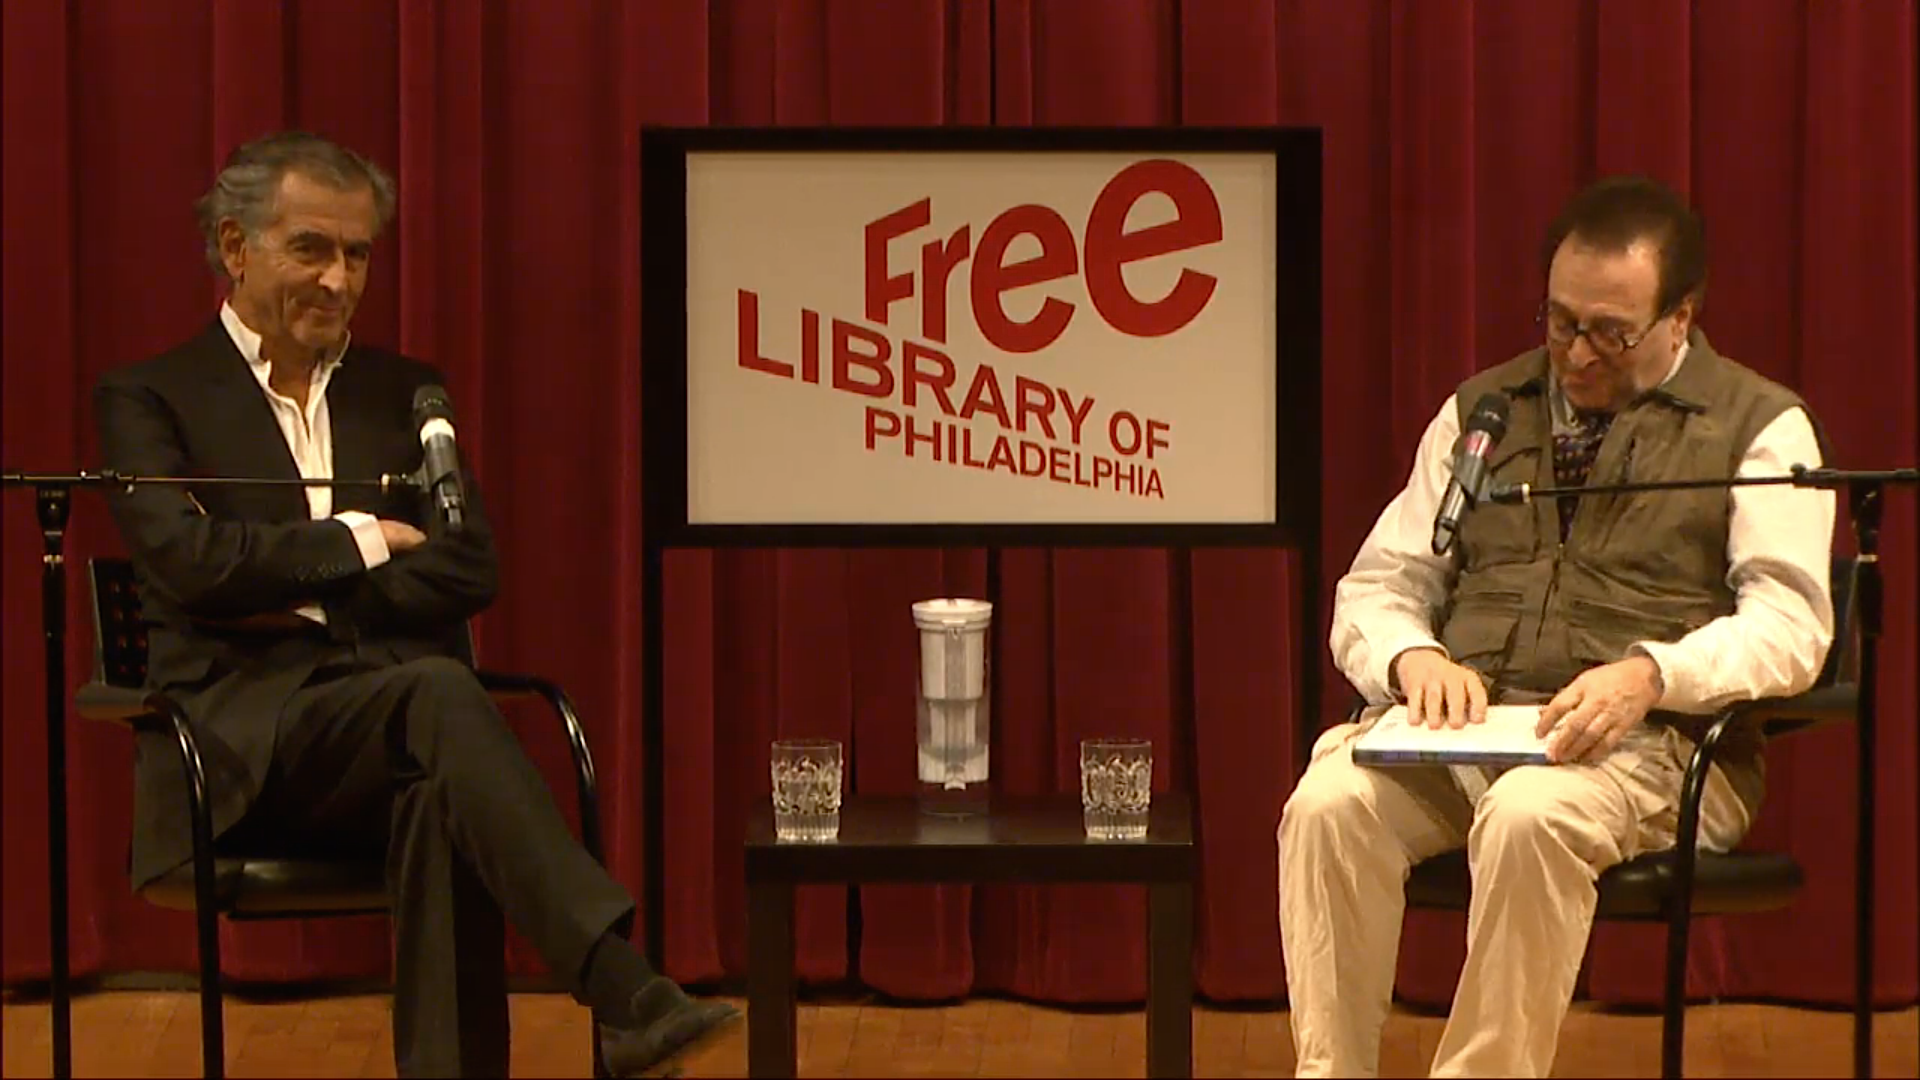 Bernard-Henri Lévy, left, waits for a question from Carlin Romano, right, in a screenshot from the Livestream of Lévy's appearance at the Free Library.